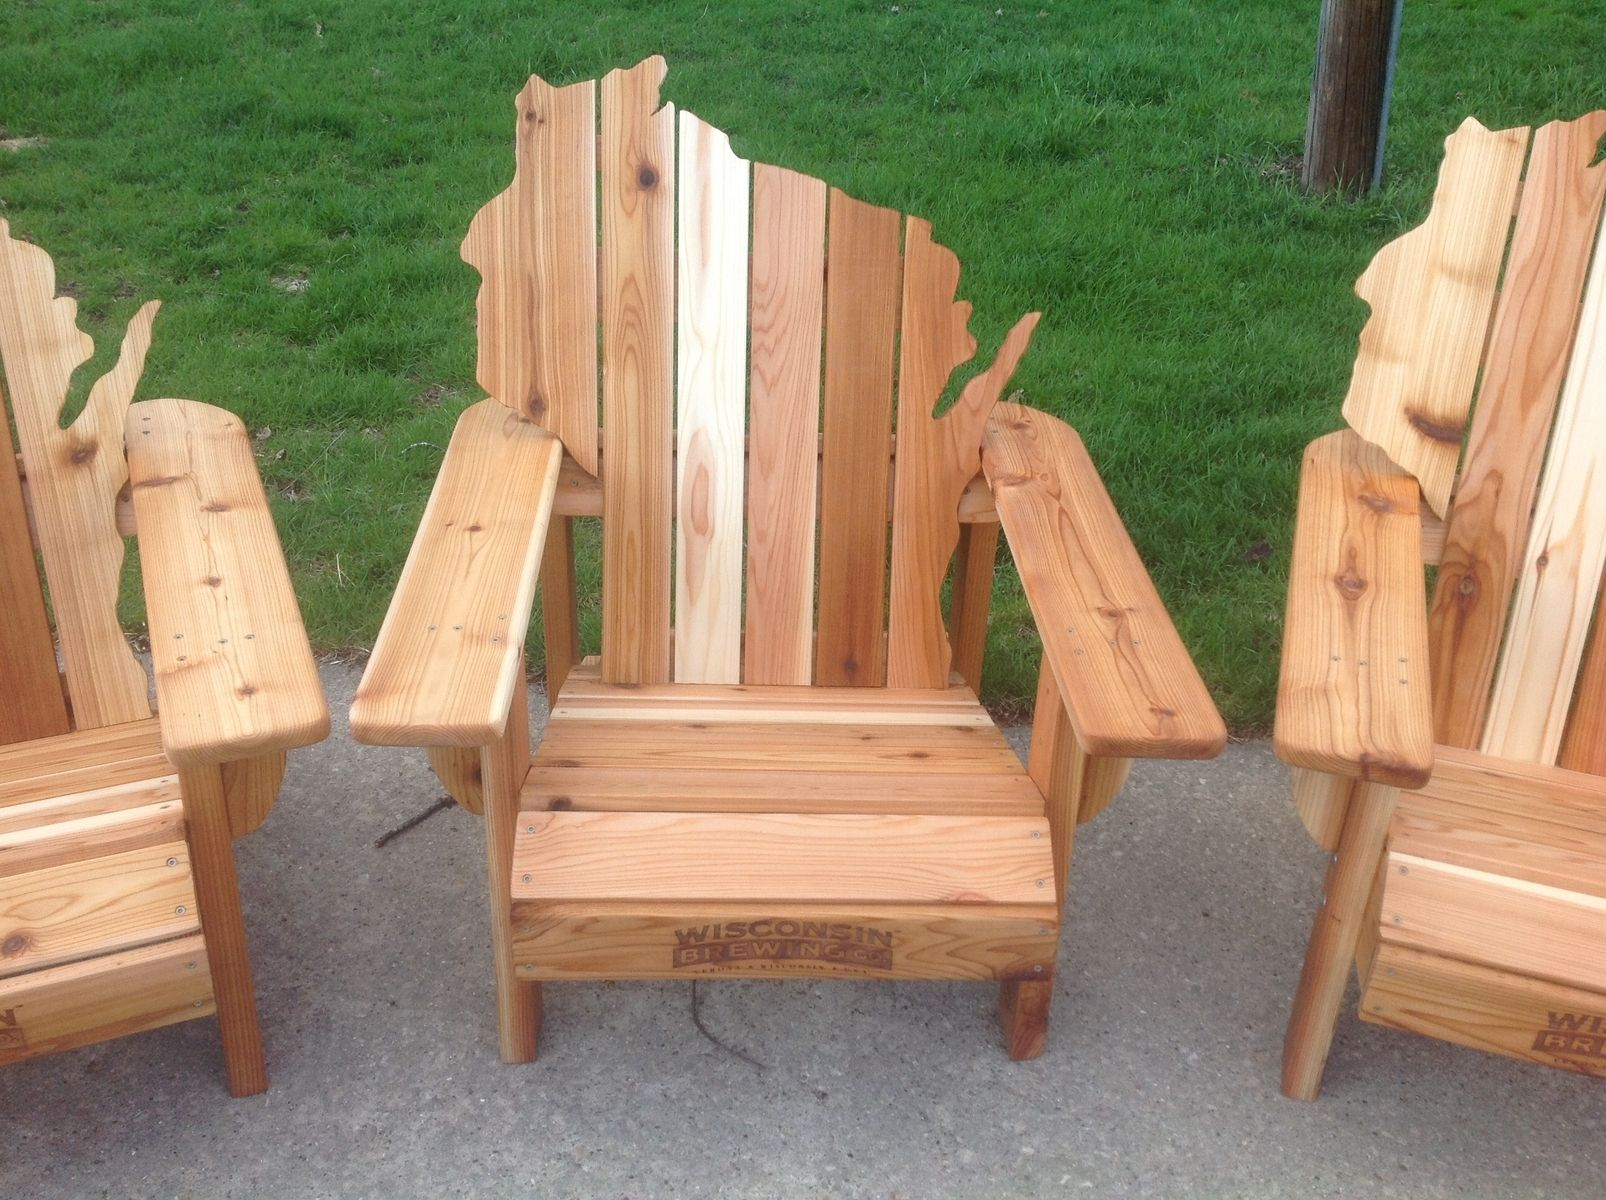 Handmade Cedar Adirondack Wisconsin Chairs With Personalized Laser Engraving By Drew 39 S Up North